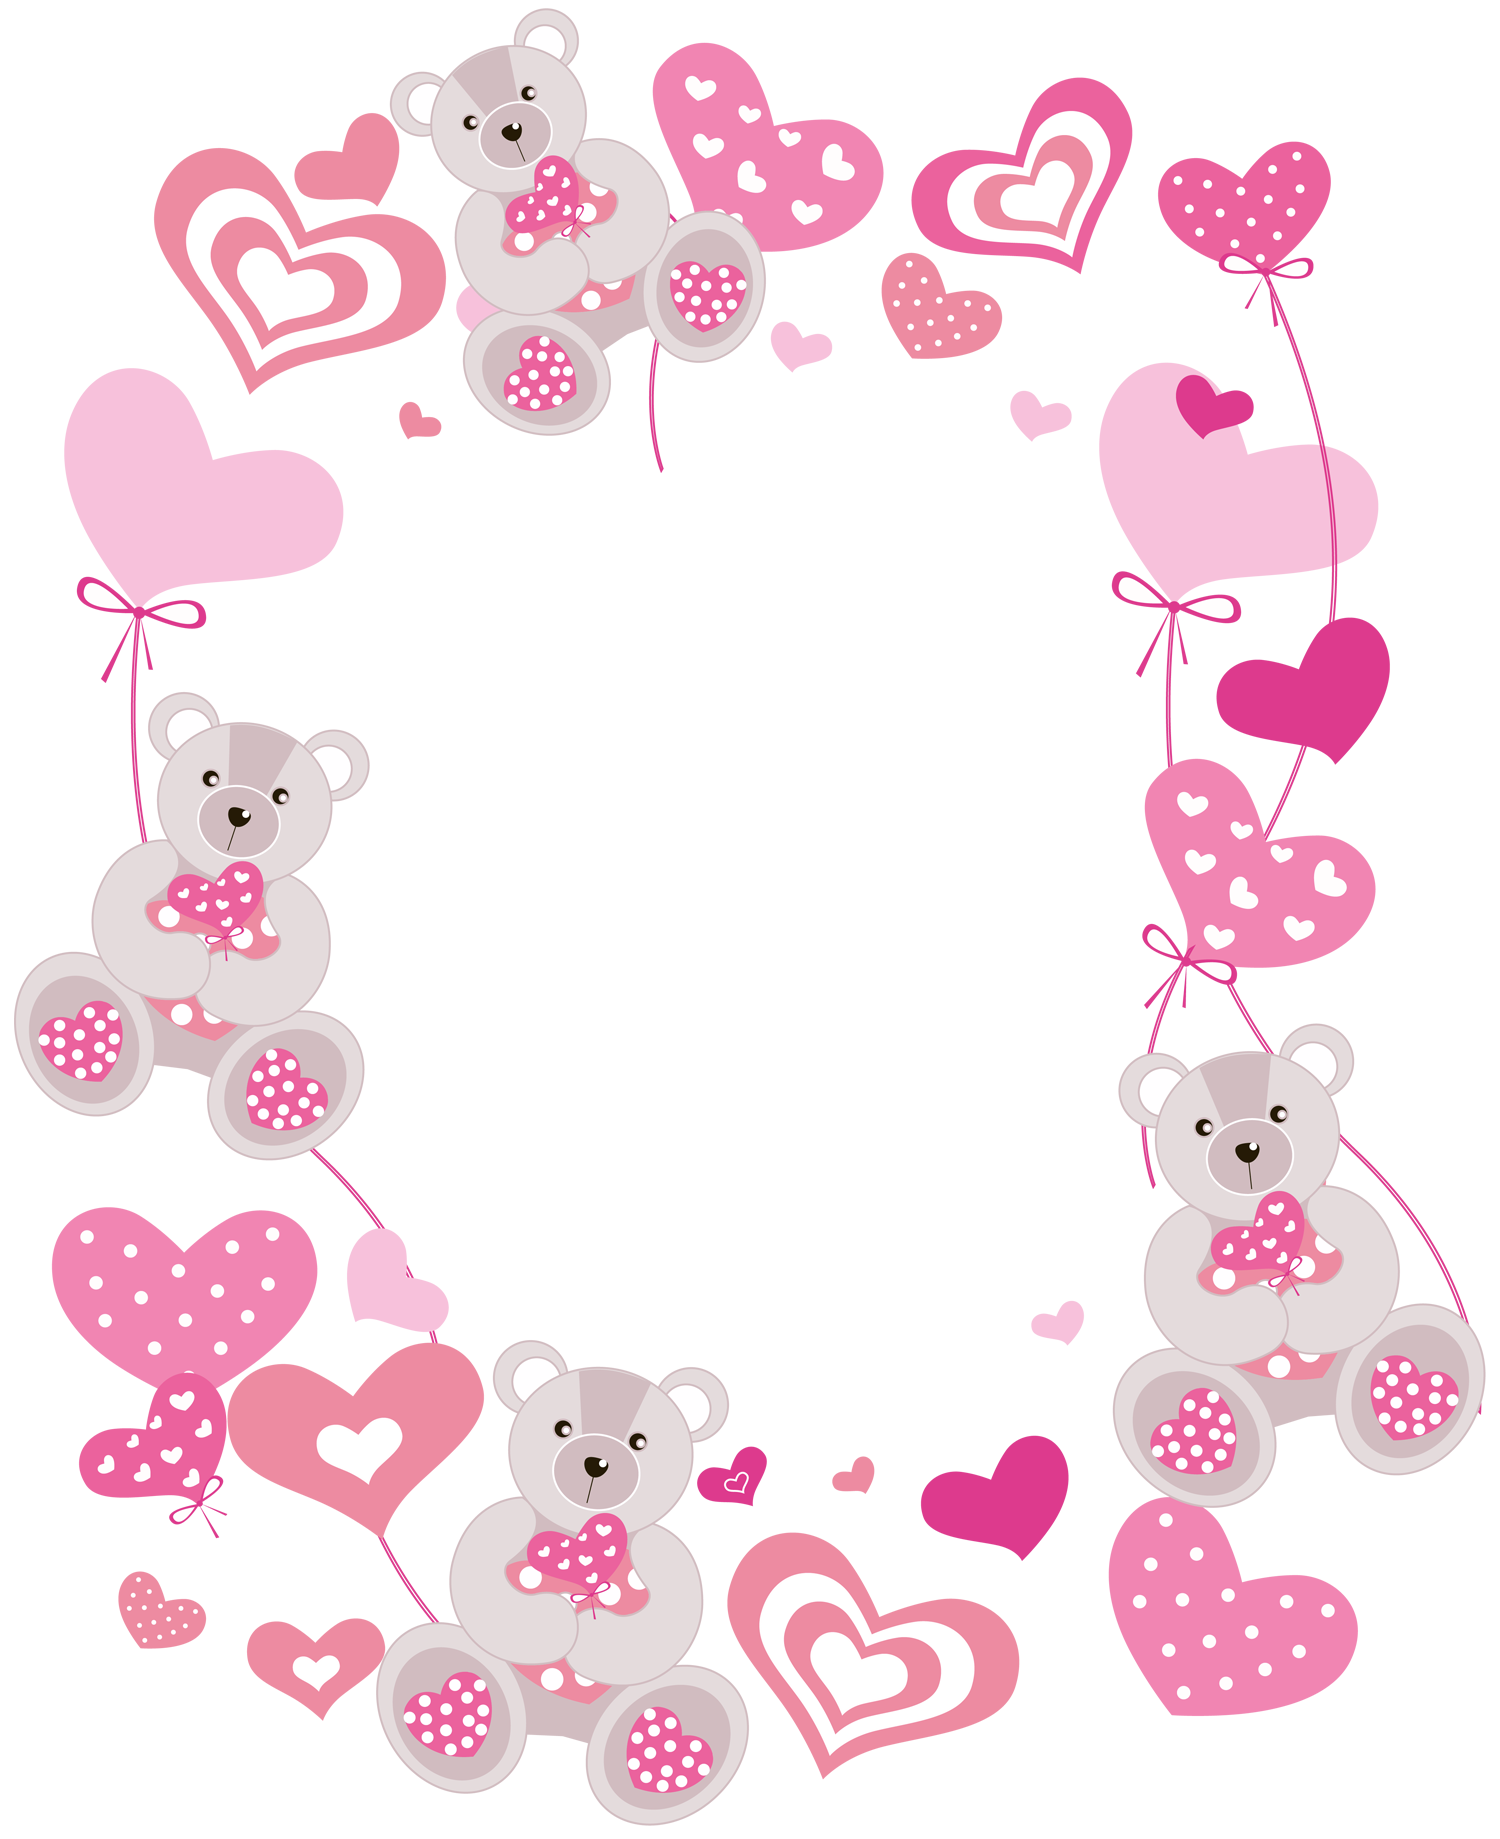 Bear borders clipart clipart free download Transparent Hearts PNG Photo Frame with Teddy Bears | Gallery ... clipart free download